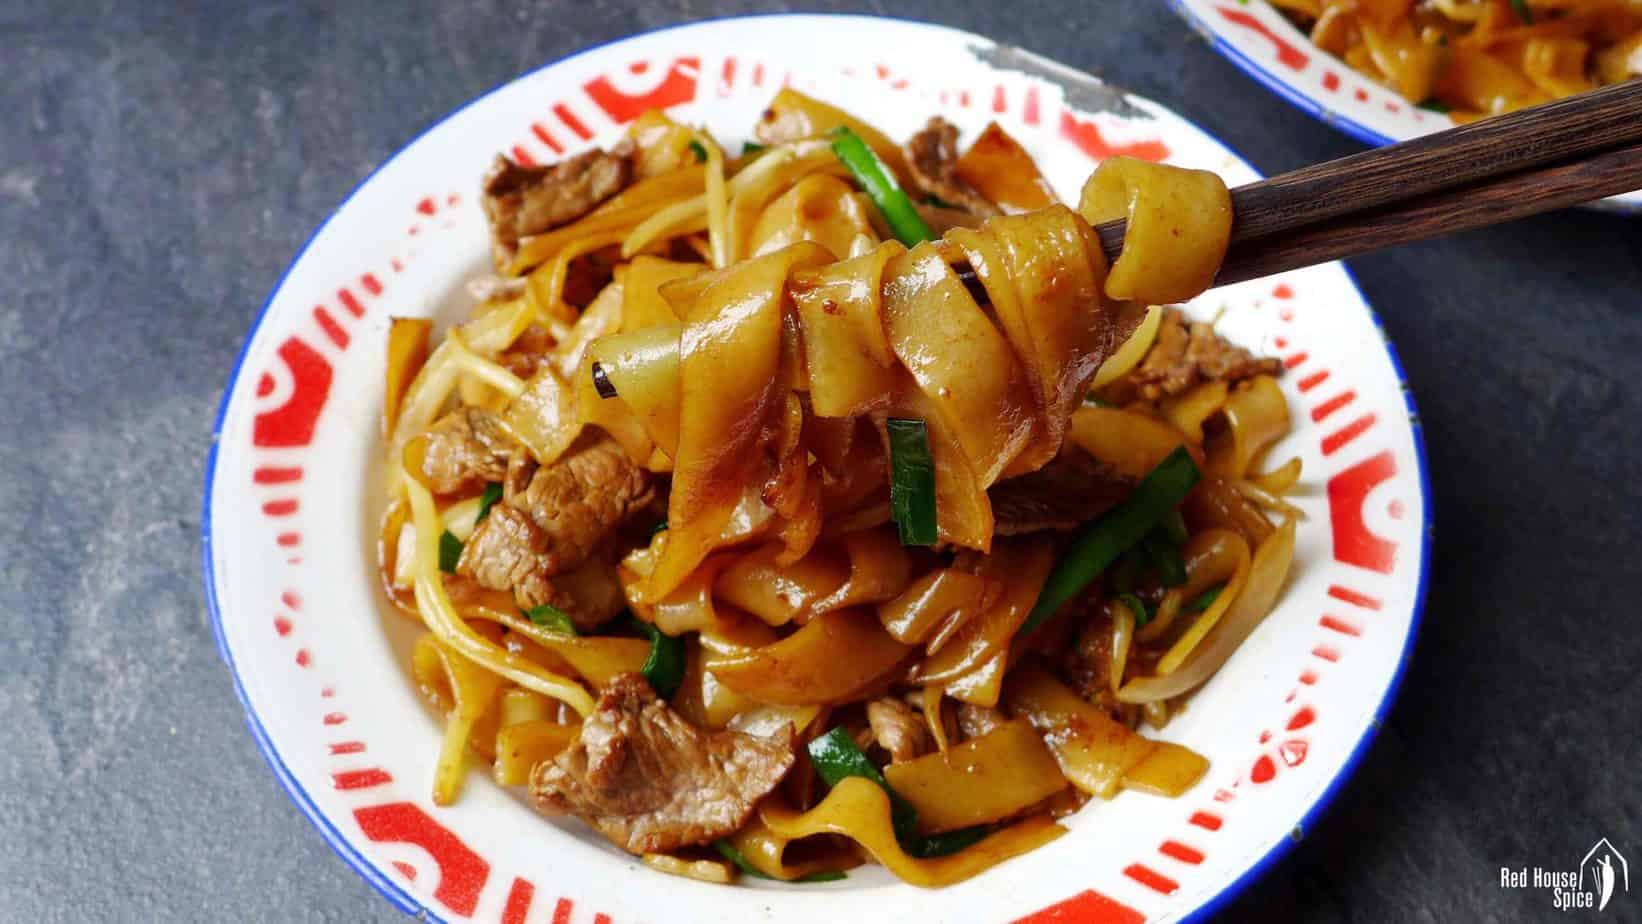 Beef Chow Fun Beef Ho Fun 干炒牛河 Red House Spice